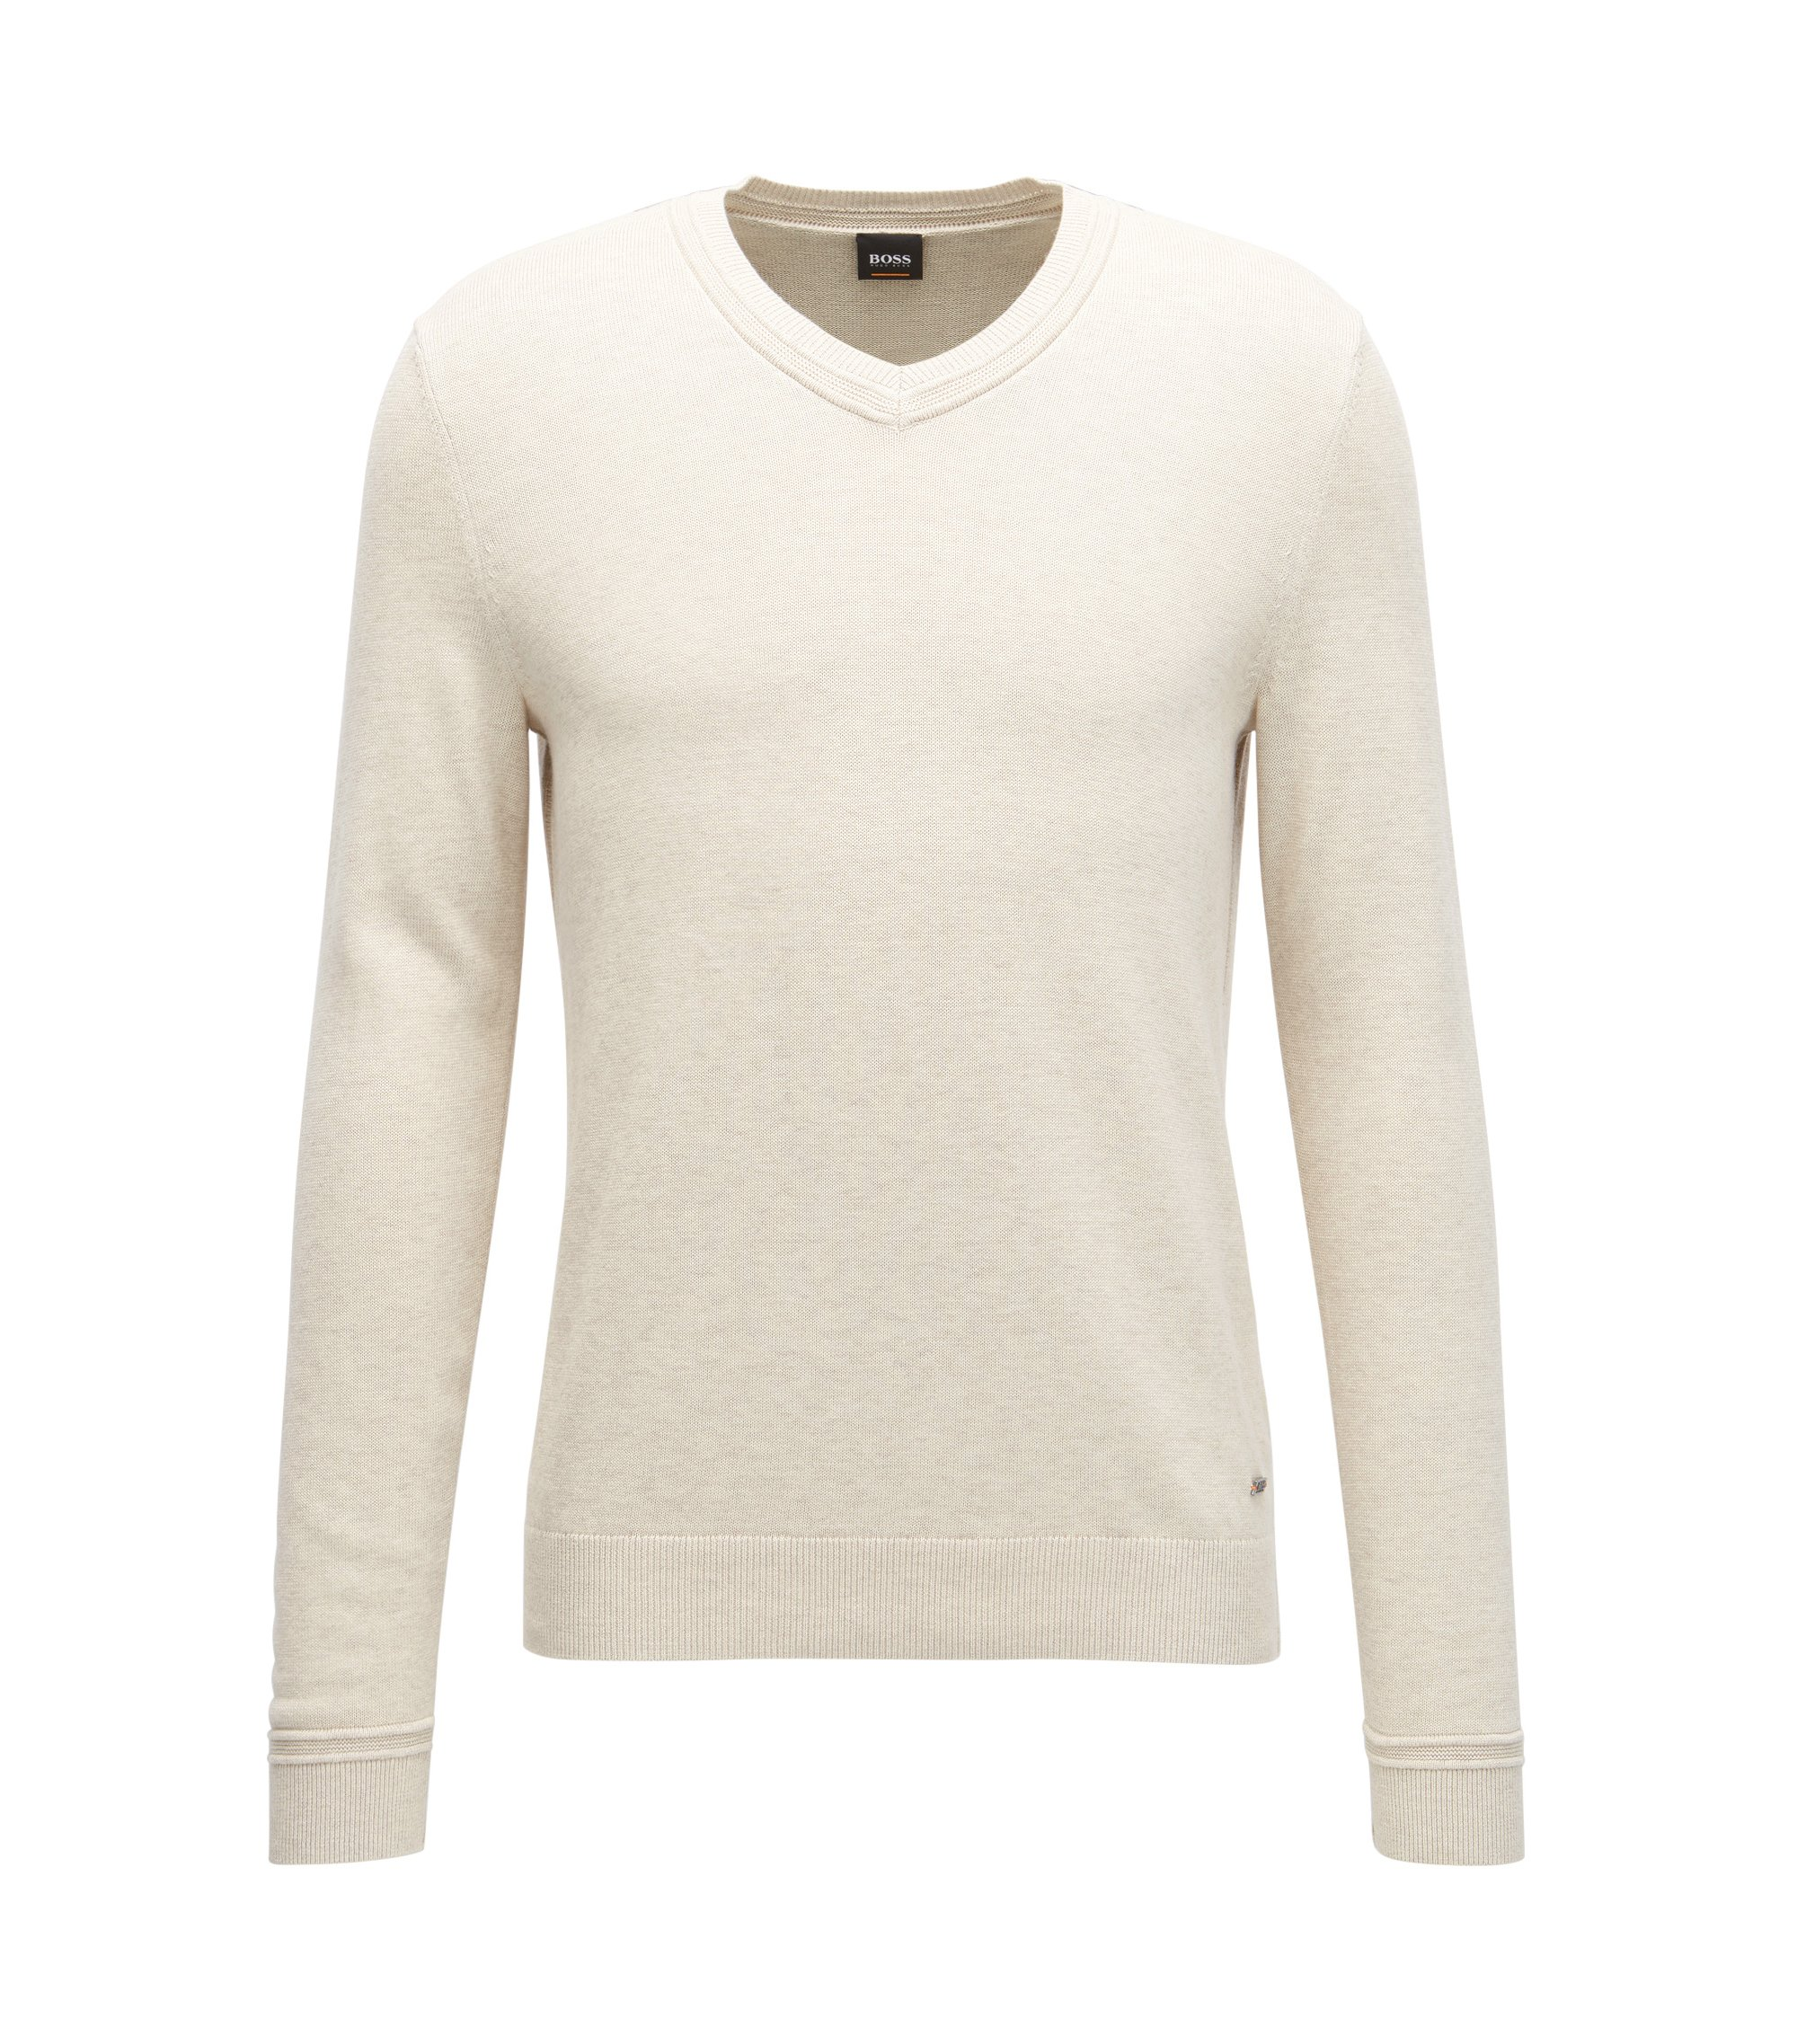 V-neck cotton-blend sweater with textured accents, Natural